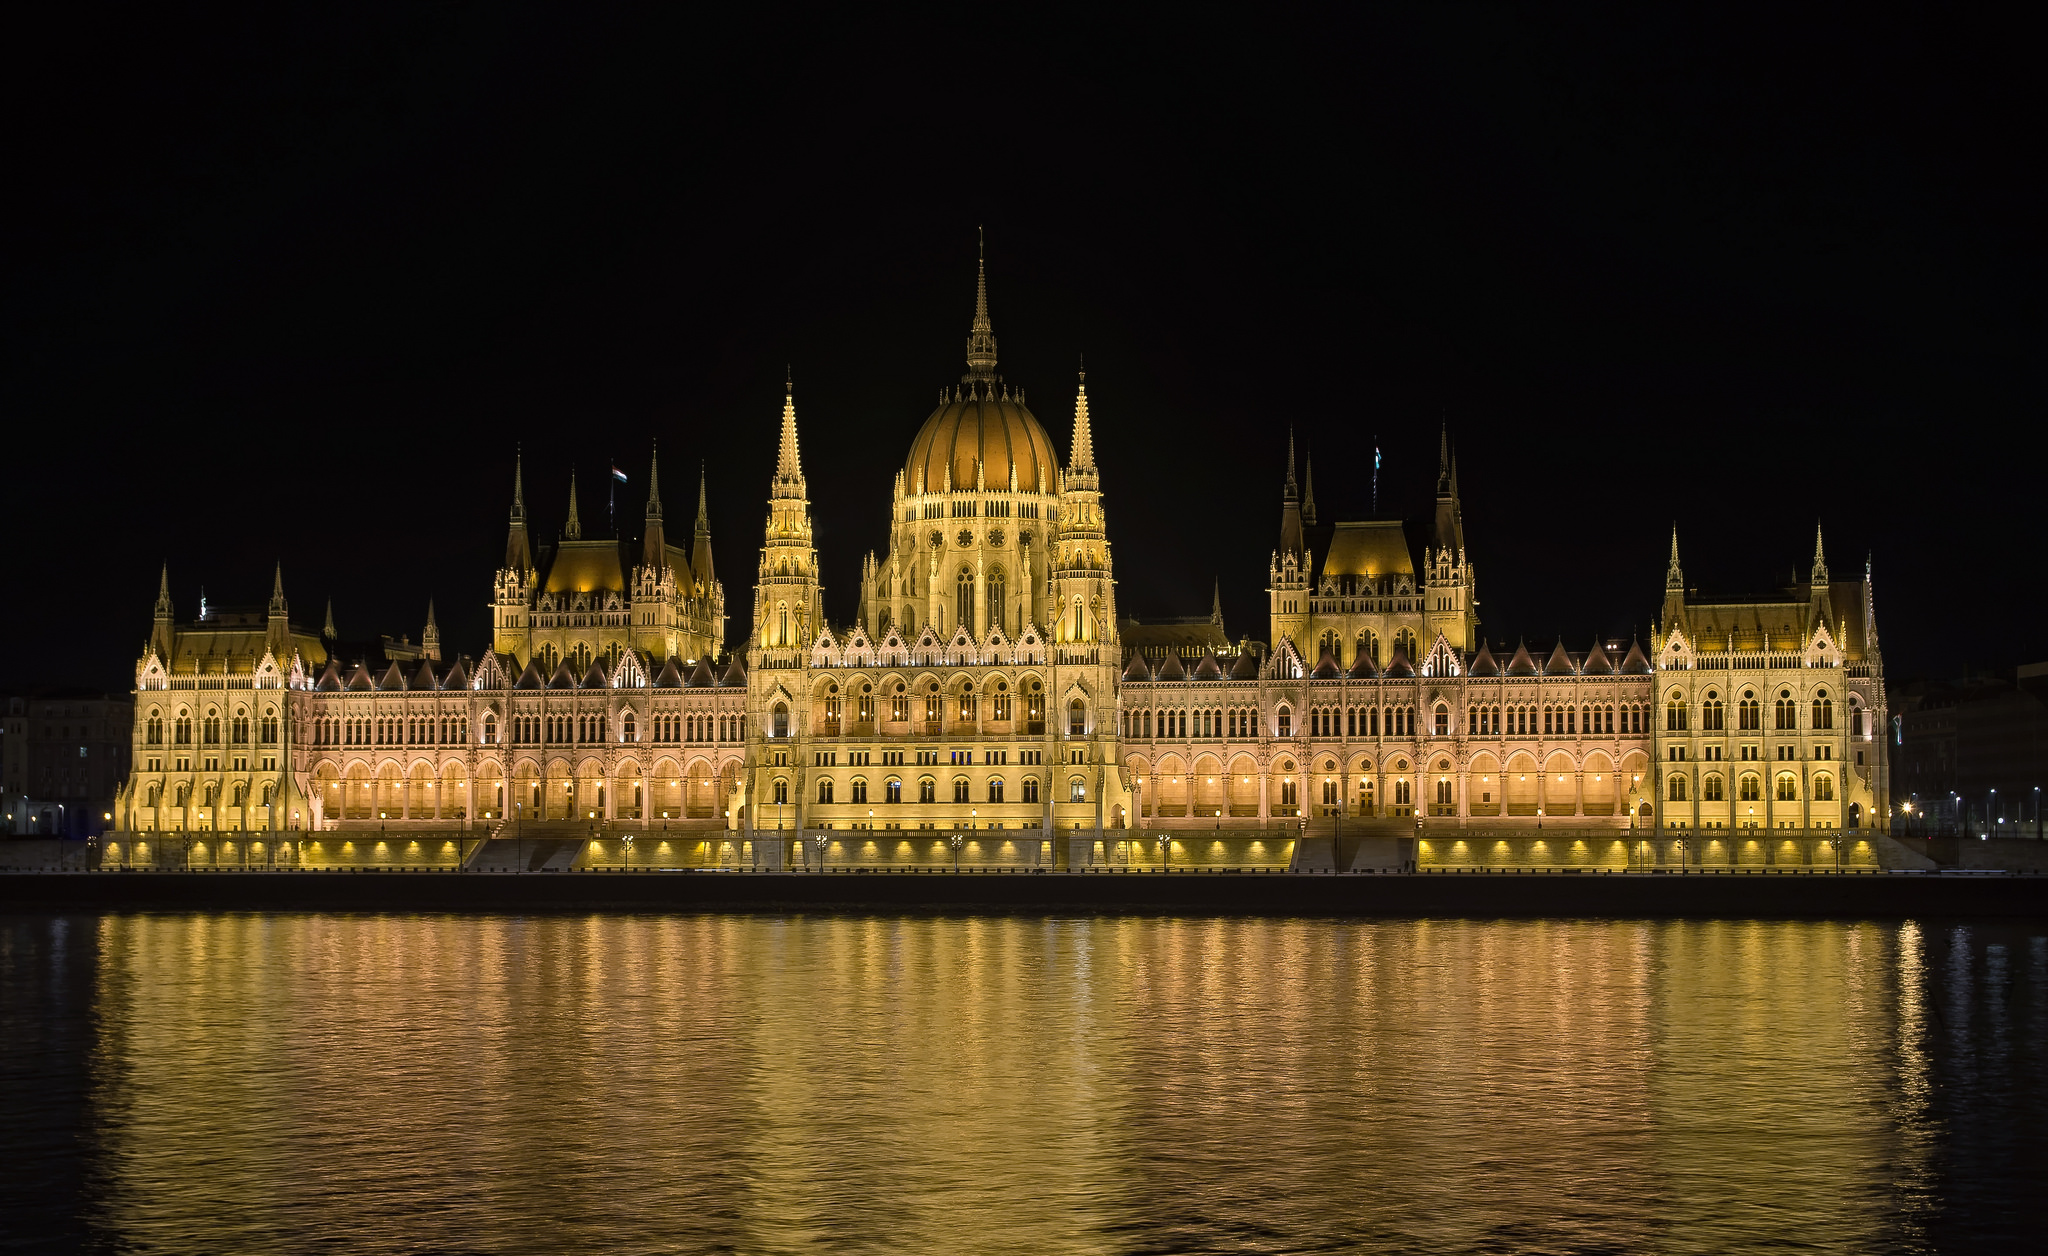 Palace Wallpaper Hd Budapest Parliament Legislative Building In Budapest